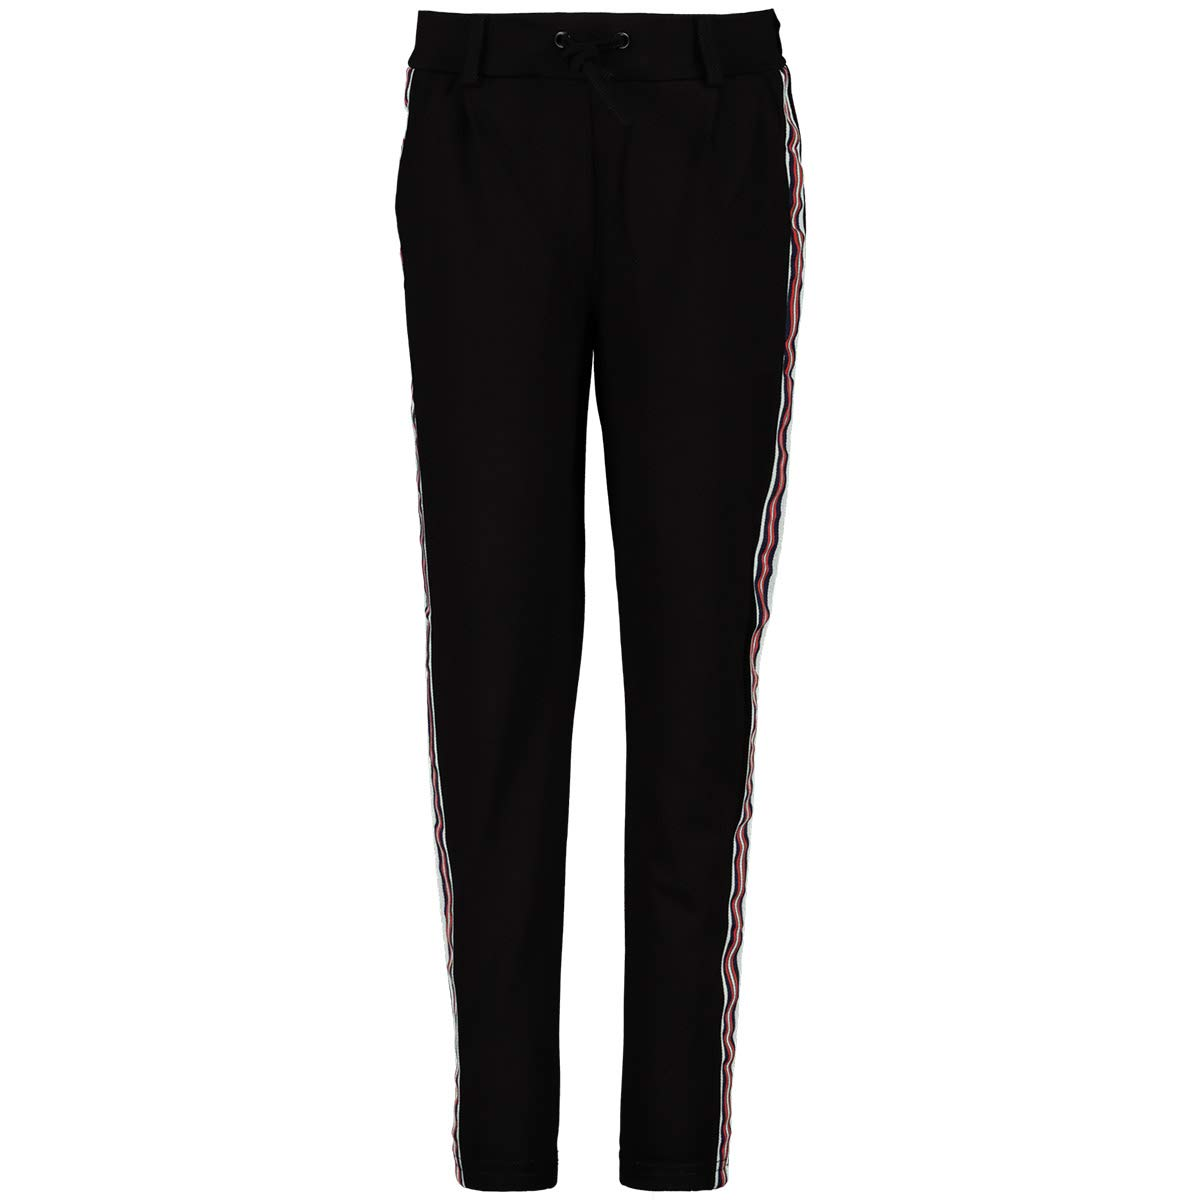 NAME IT Mädchen Hose Nkfirida Normal Pant Noos 13158656